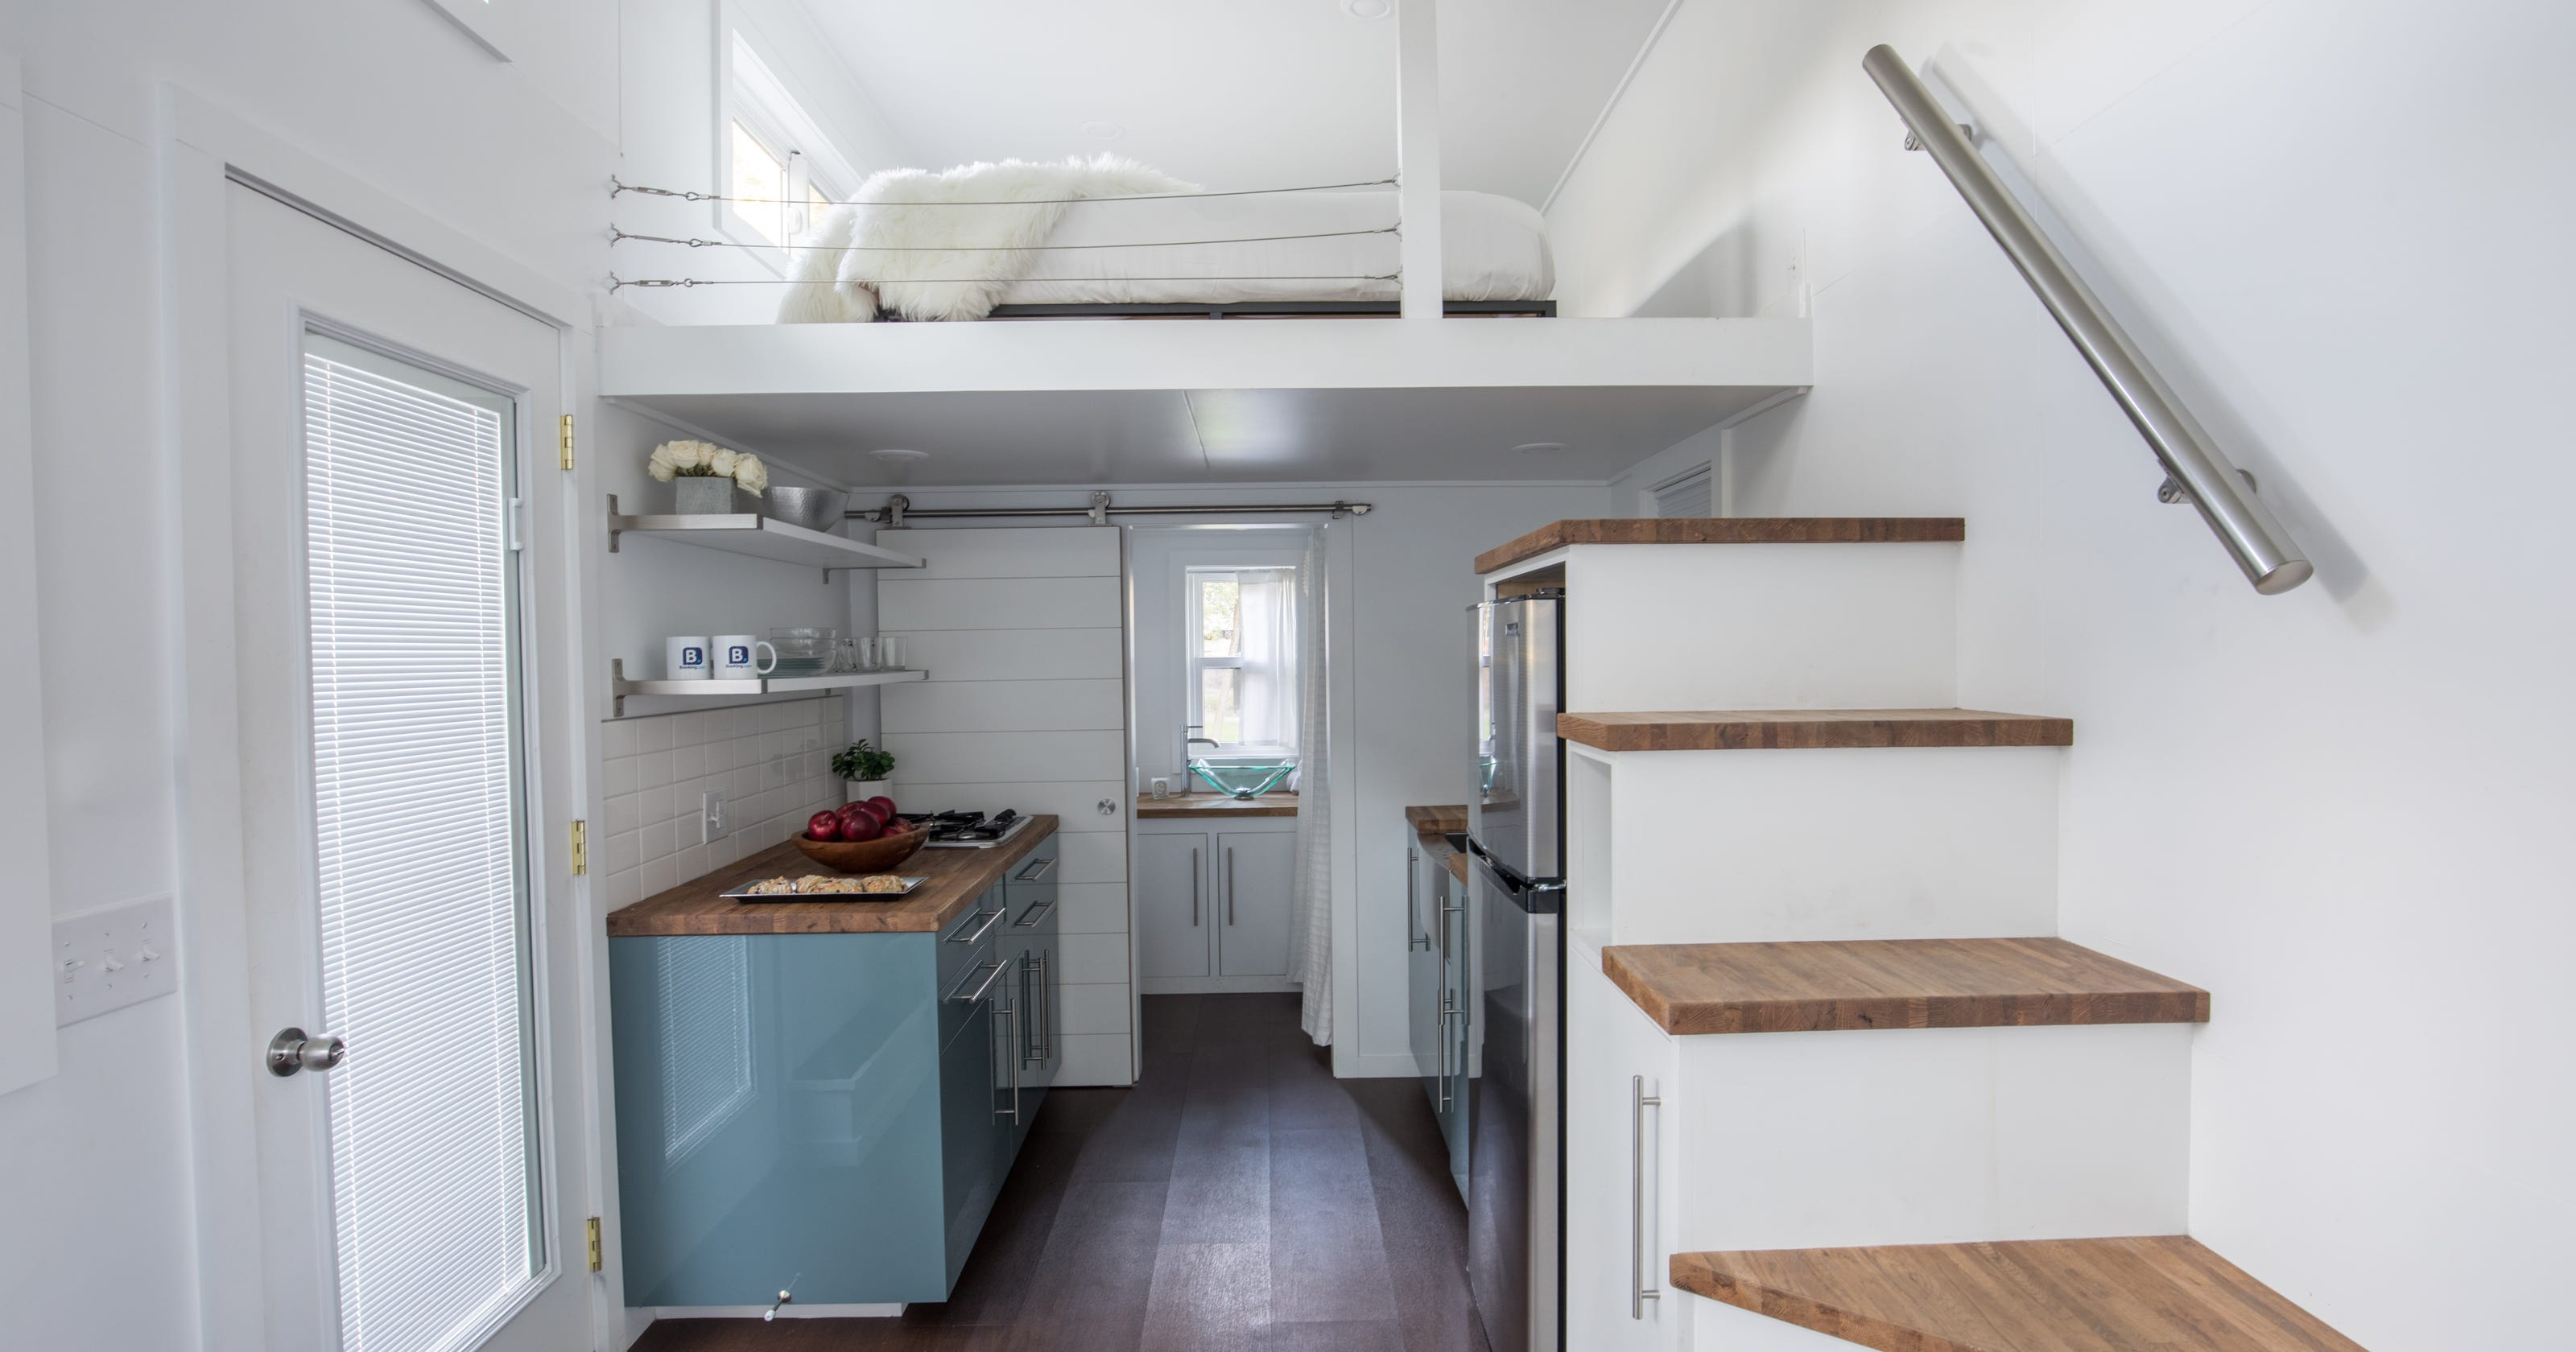 Comedian Kevin Hart decorates a tiny house for Booking.com. on caboose home plans, bobber caboose model plans, caboose interior plans, caboose construction plans, caboose diy plans, caboose cabin plans, caboose shed plans,